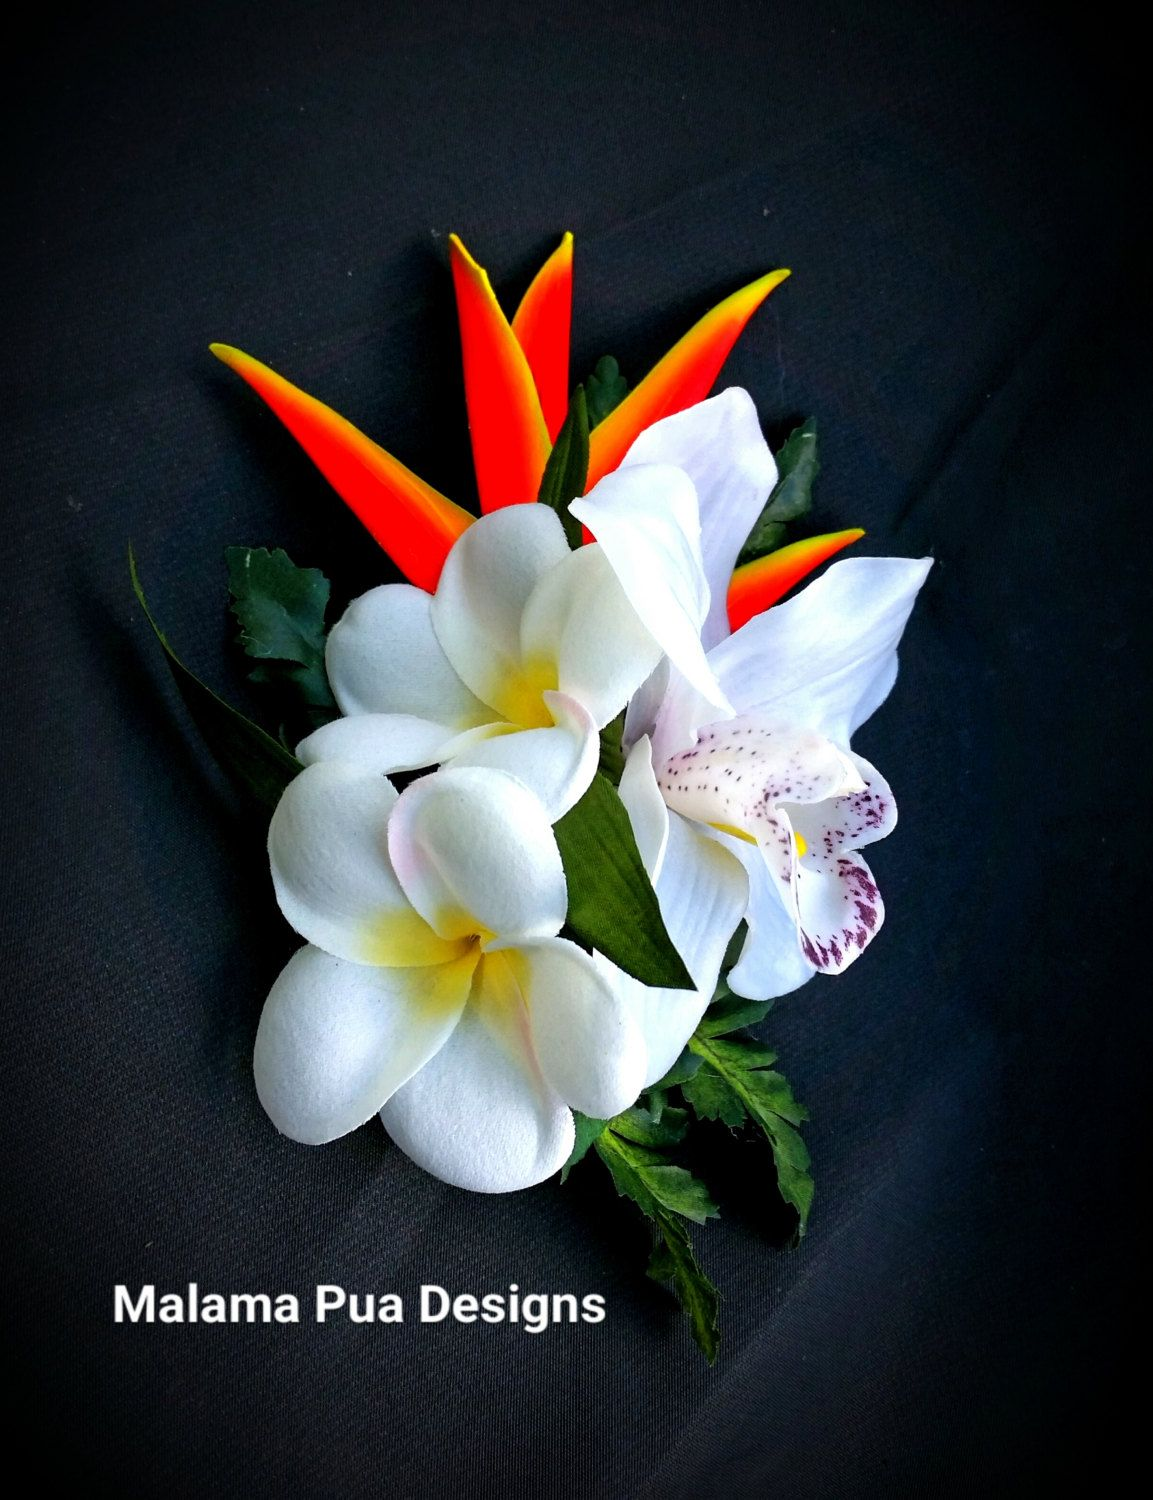 Orchid plumeria flower clip bridal silk hair flowers hair orchid plumeria flower clip bridal silk hair flowers hair accessory hawaiian flowers bridesmaid headpiece beach wedding hair comb by malamapua on mightylinksfo